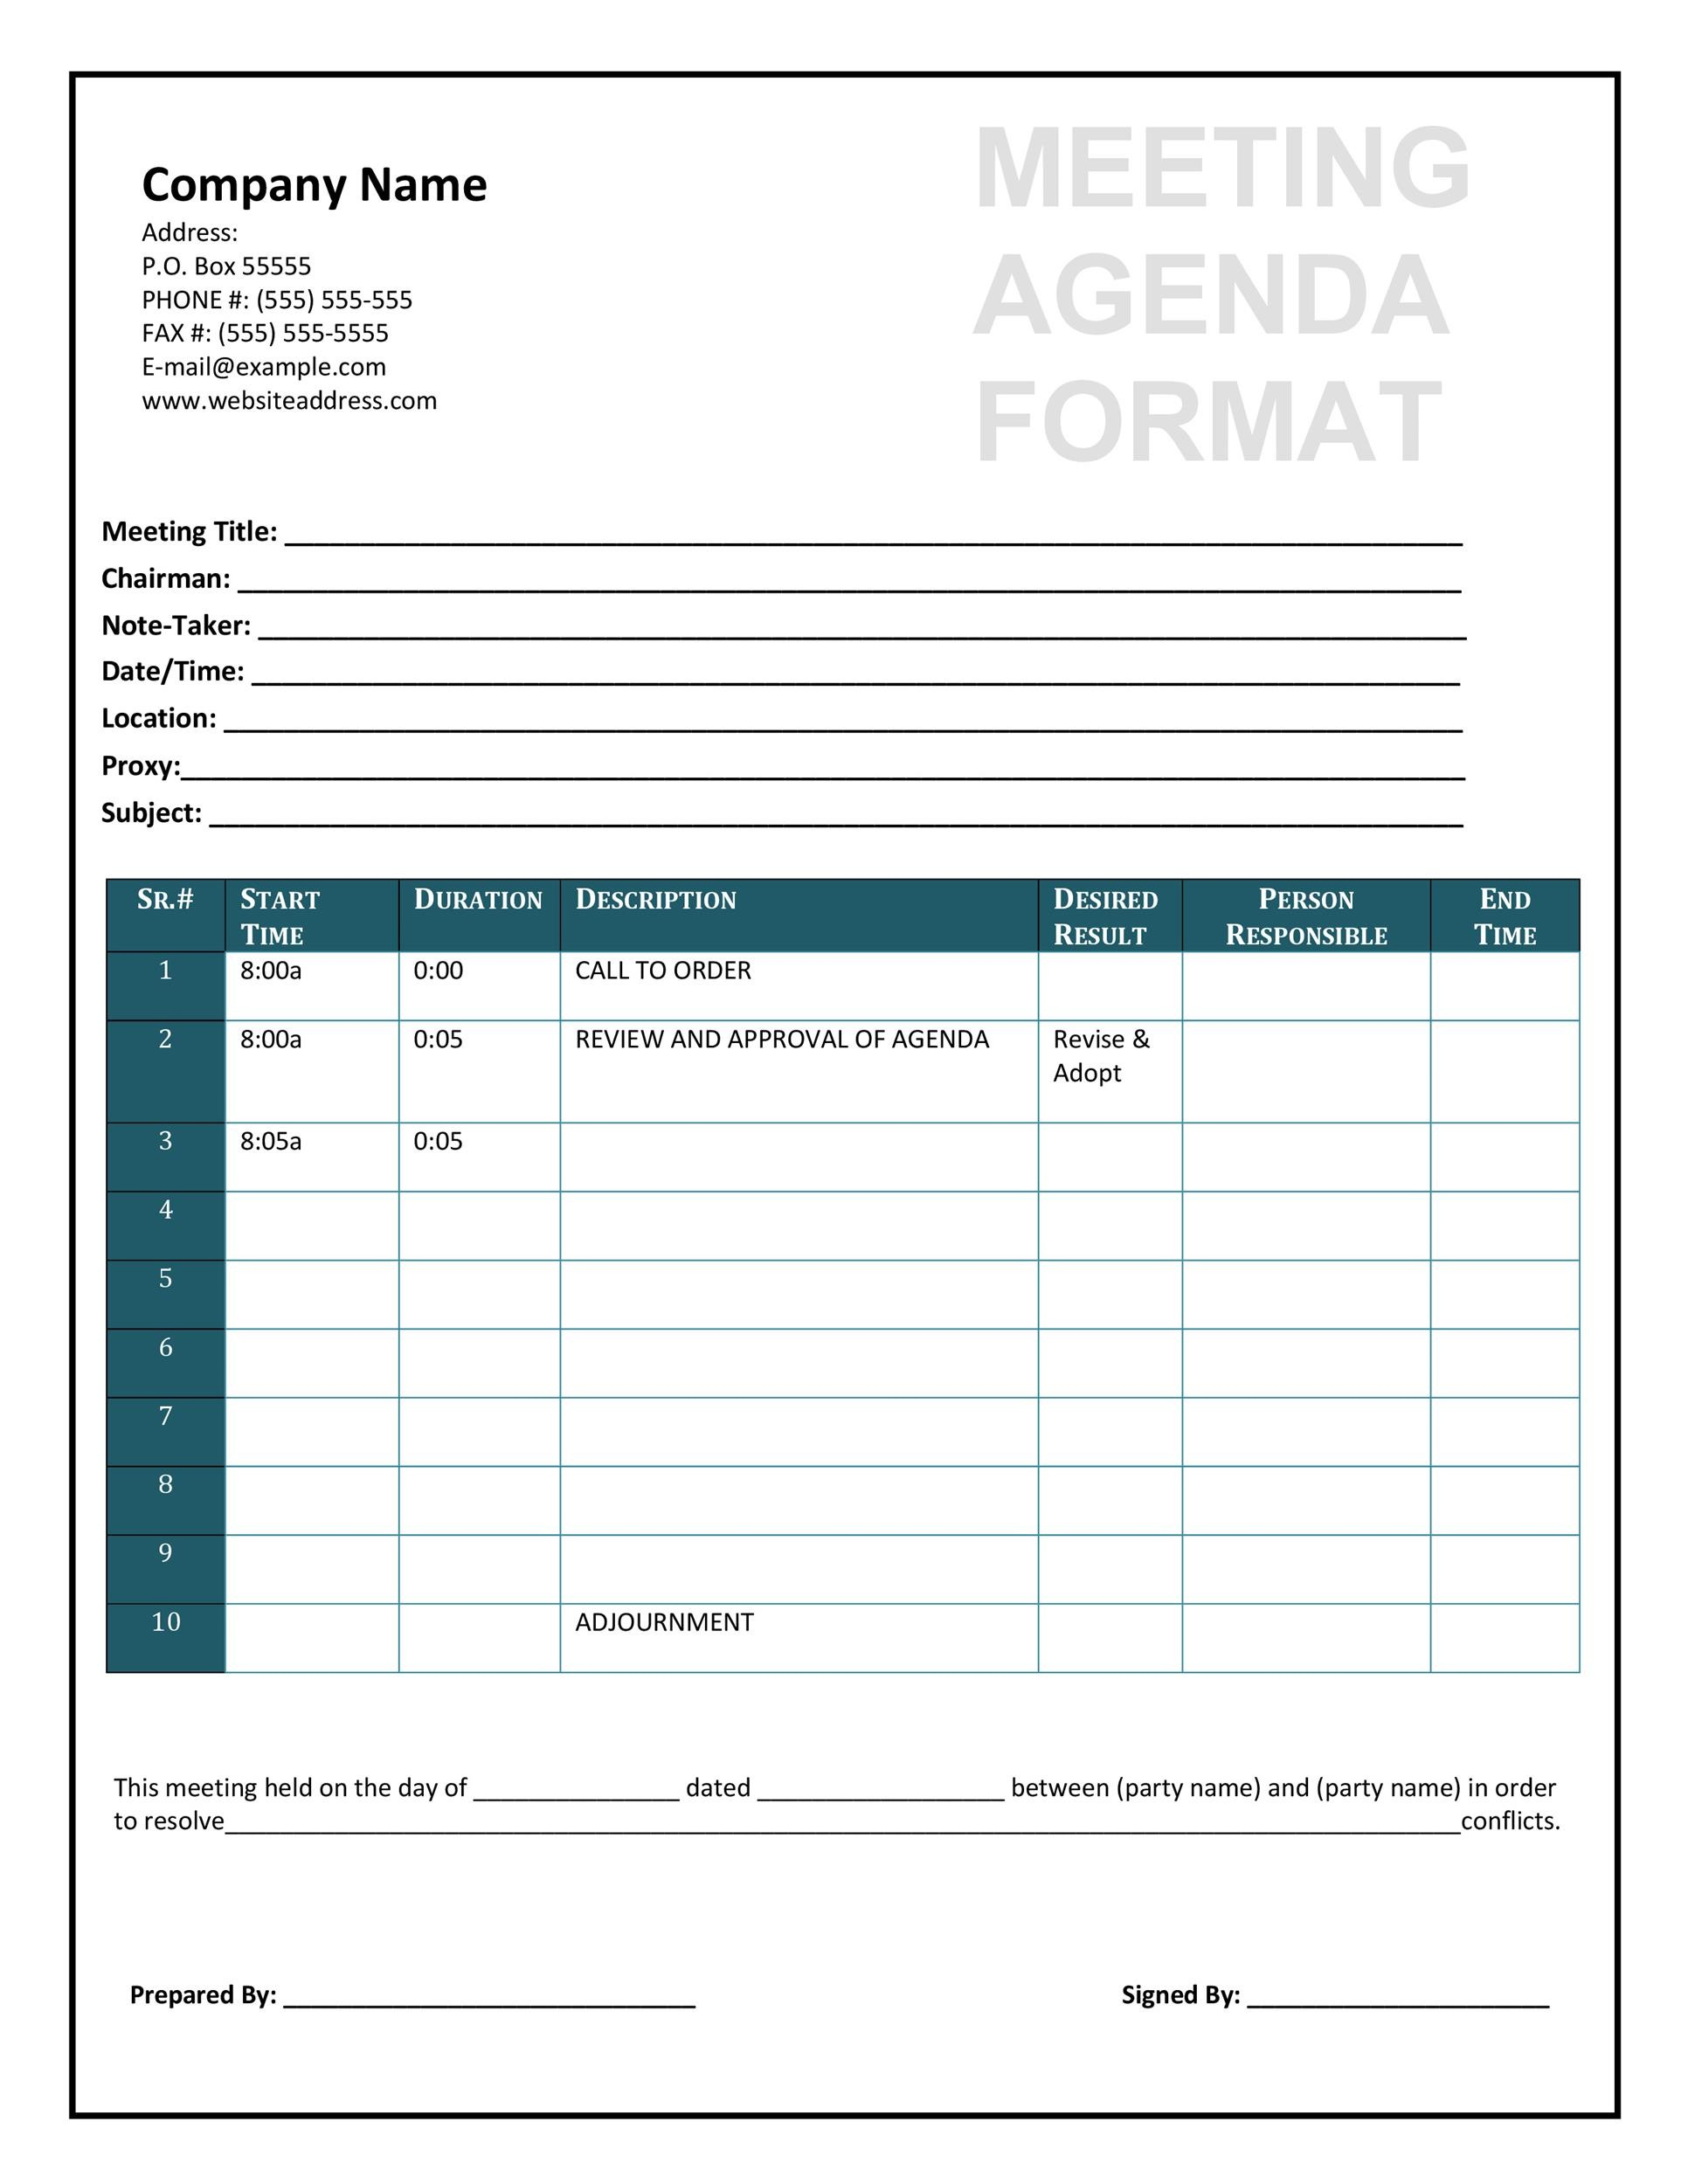 46 Effective Meeting Agenda Templates - Template Lab - meeting agenda template word